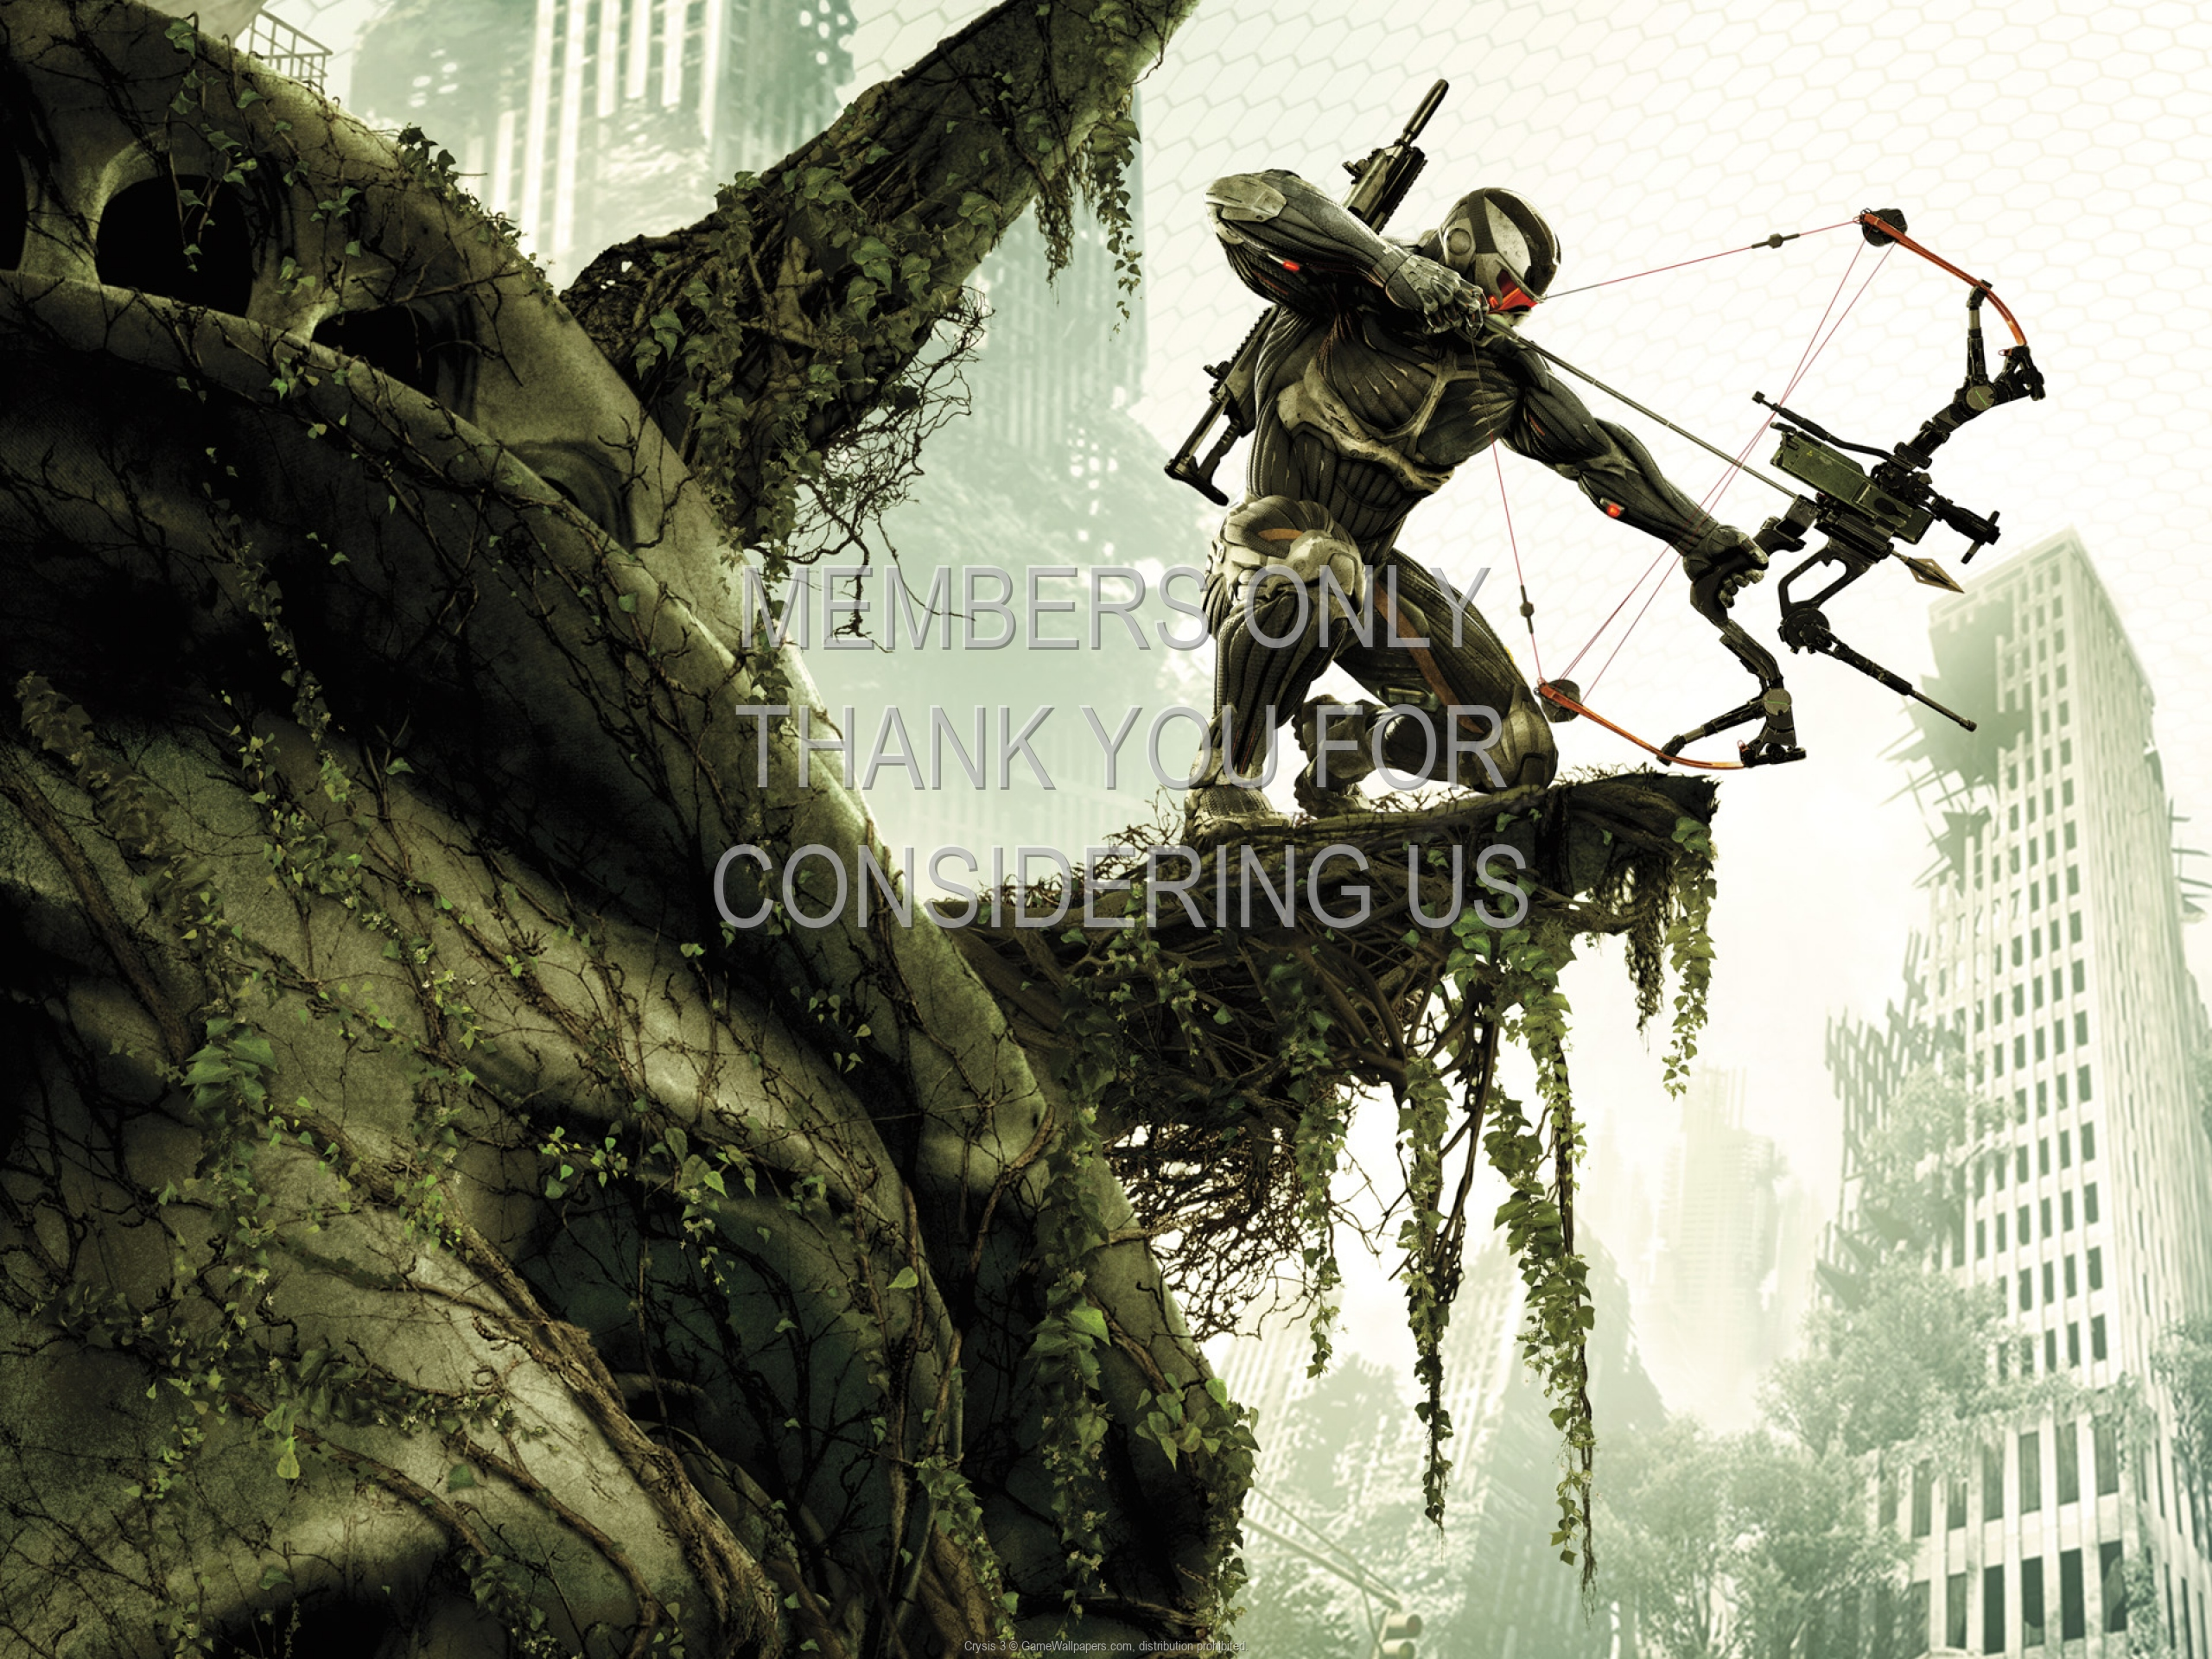 Crysis 3 1920x1080 Mobile wallpaper or background 01